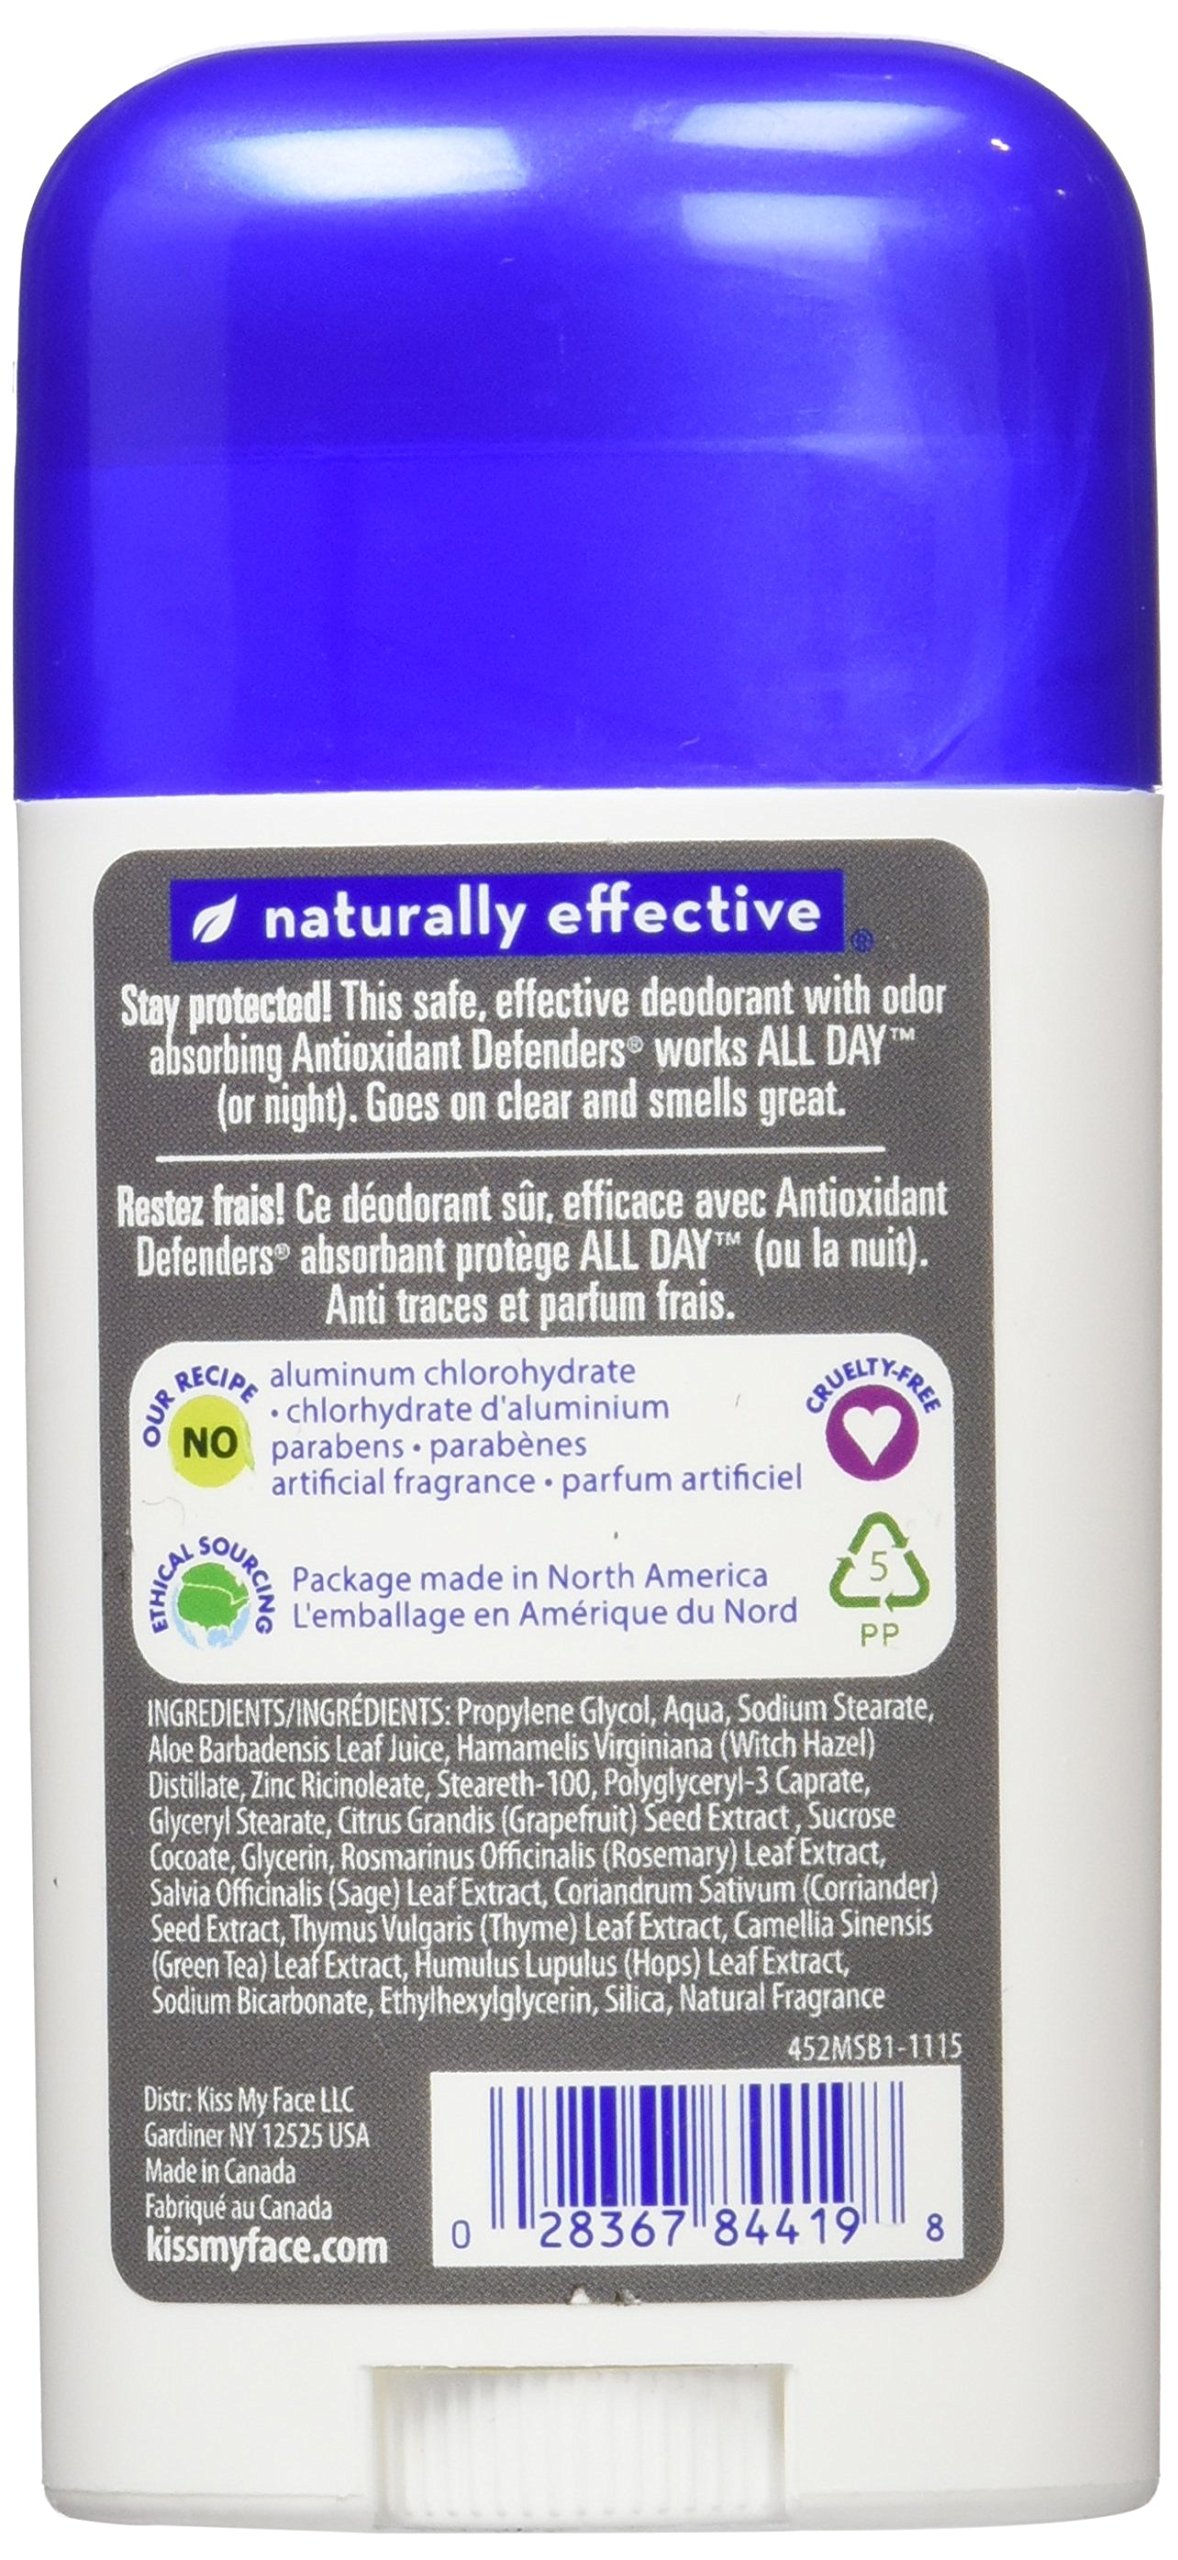 Kiss My Face Natural Man Sports Deodorant, 2.48 Ounce (Pack of 36) by Kiss My Face (Image #4)